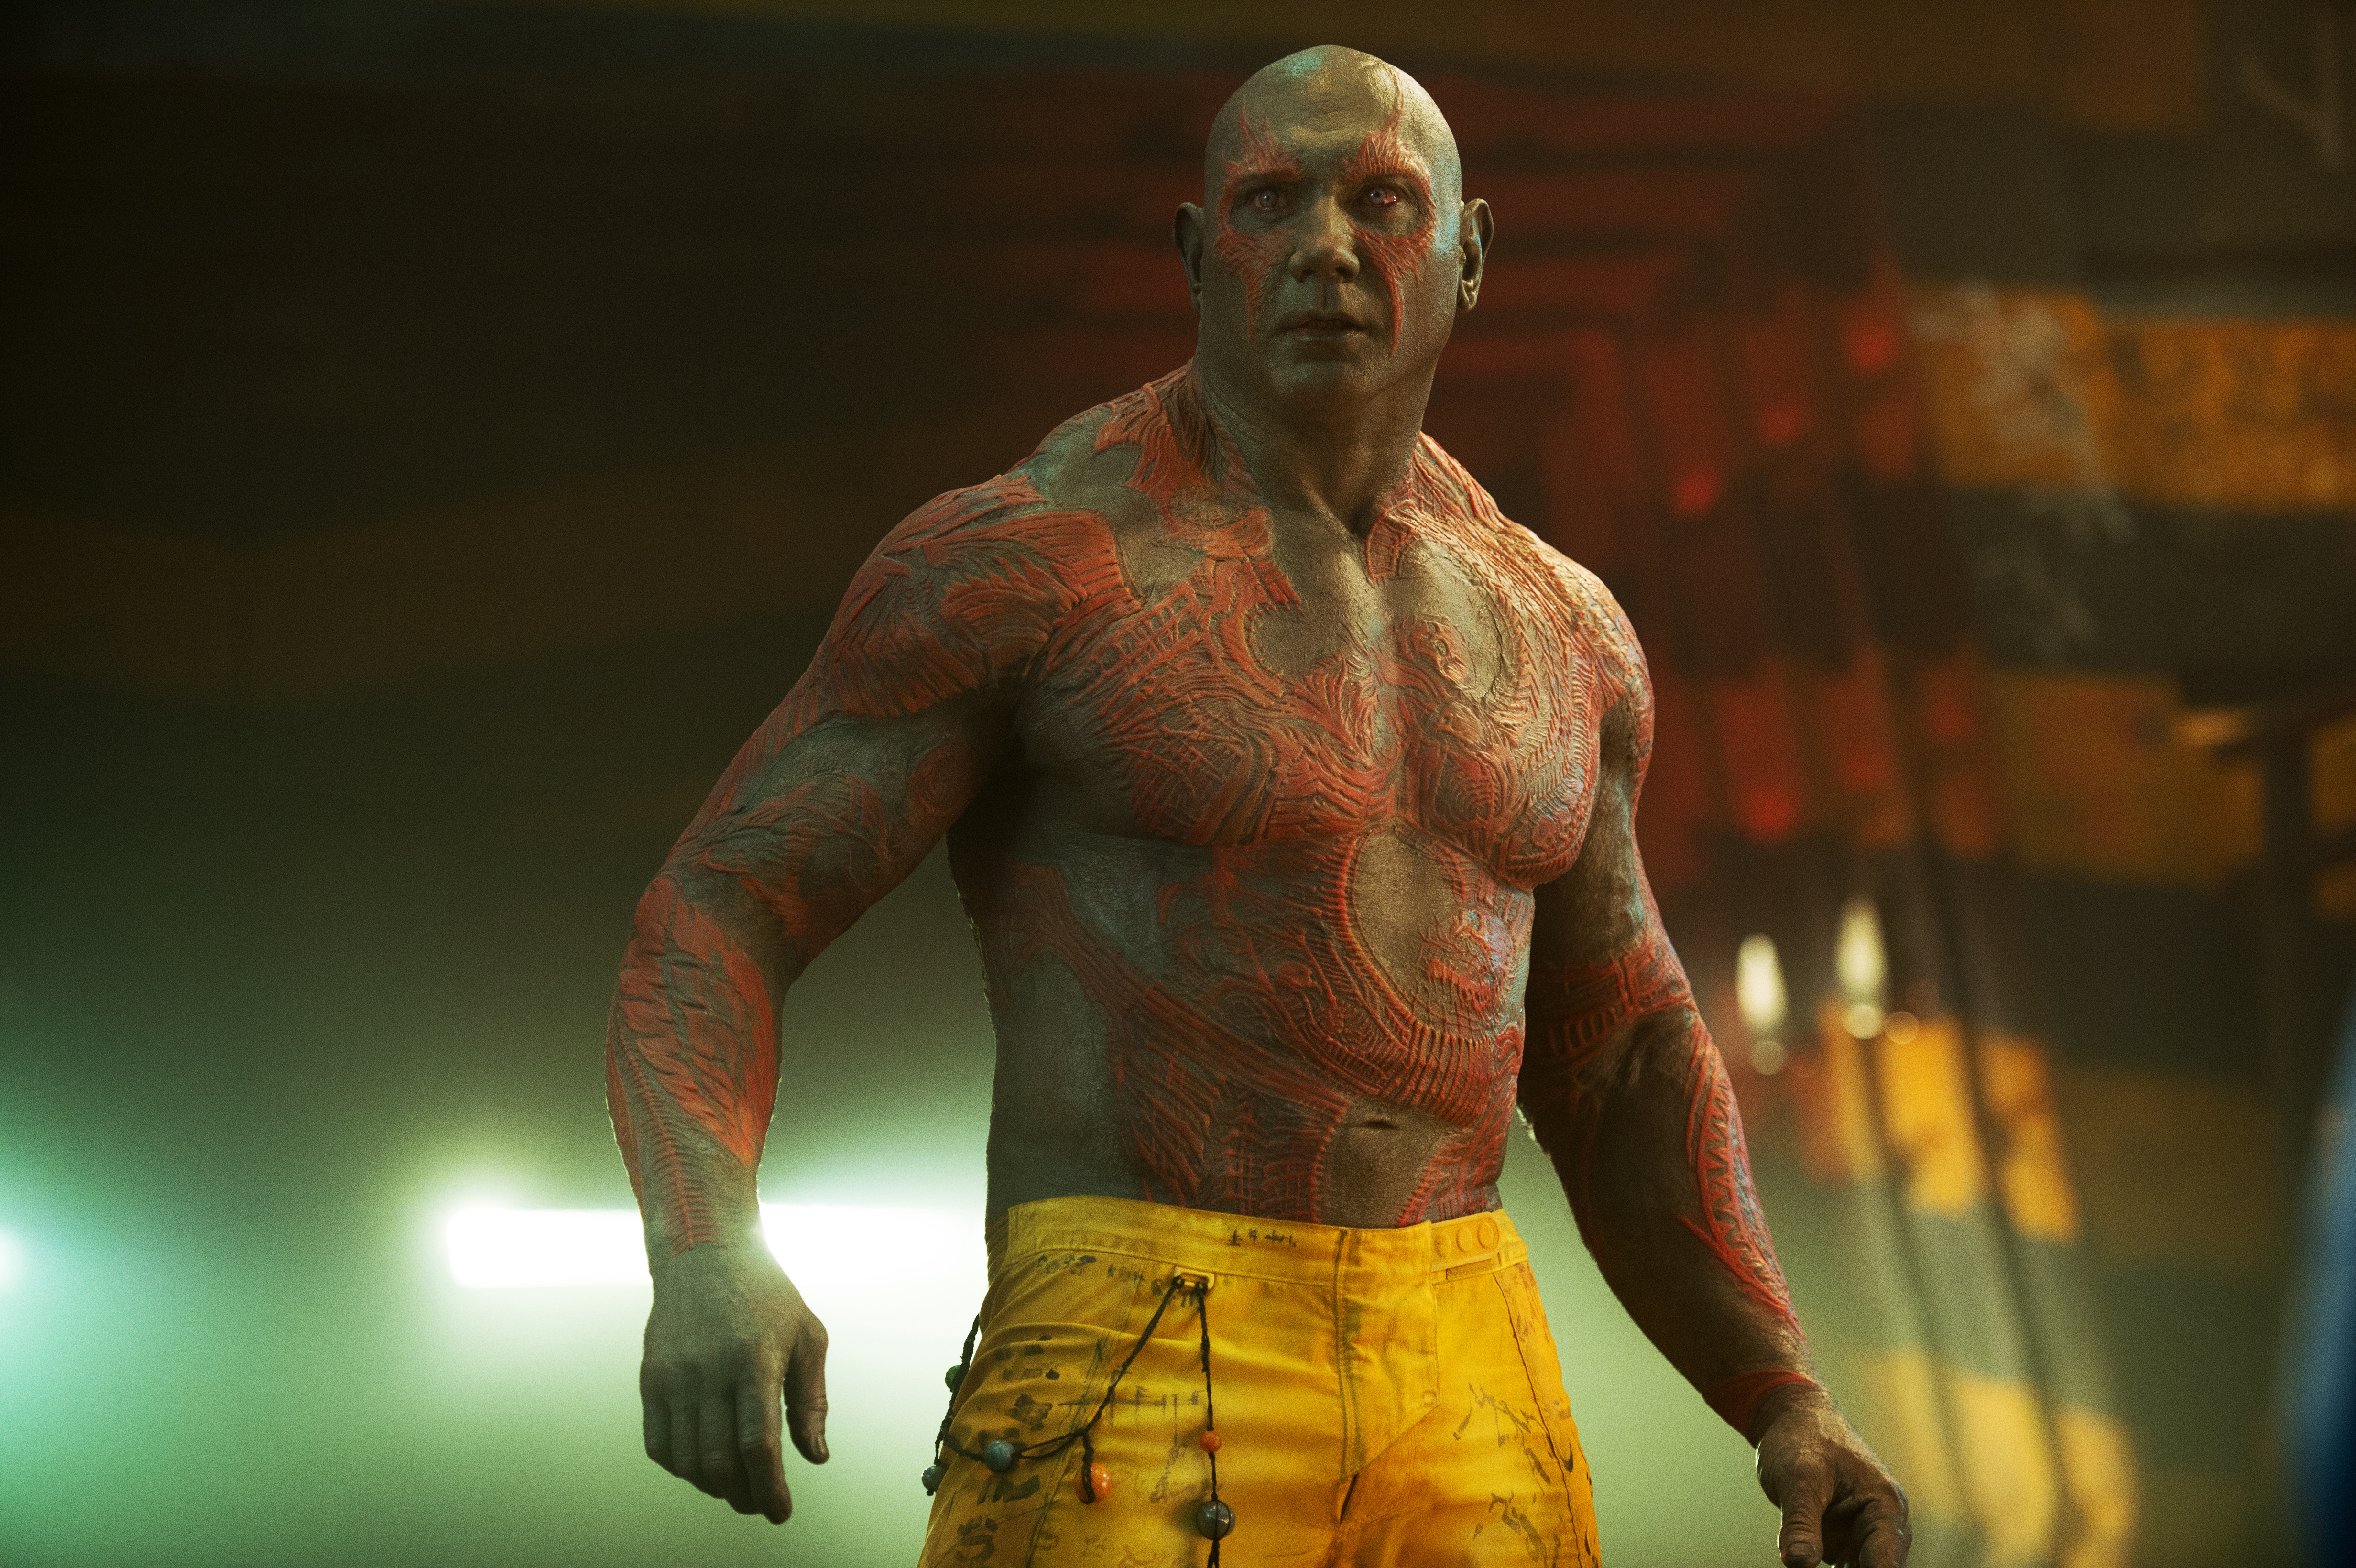 http://vignette1.wikia.nocookie.net/marvelcinematicuniverse/images/a/a7/Drax_in_Prison.jpg/revision/latest?cb=20140709210051